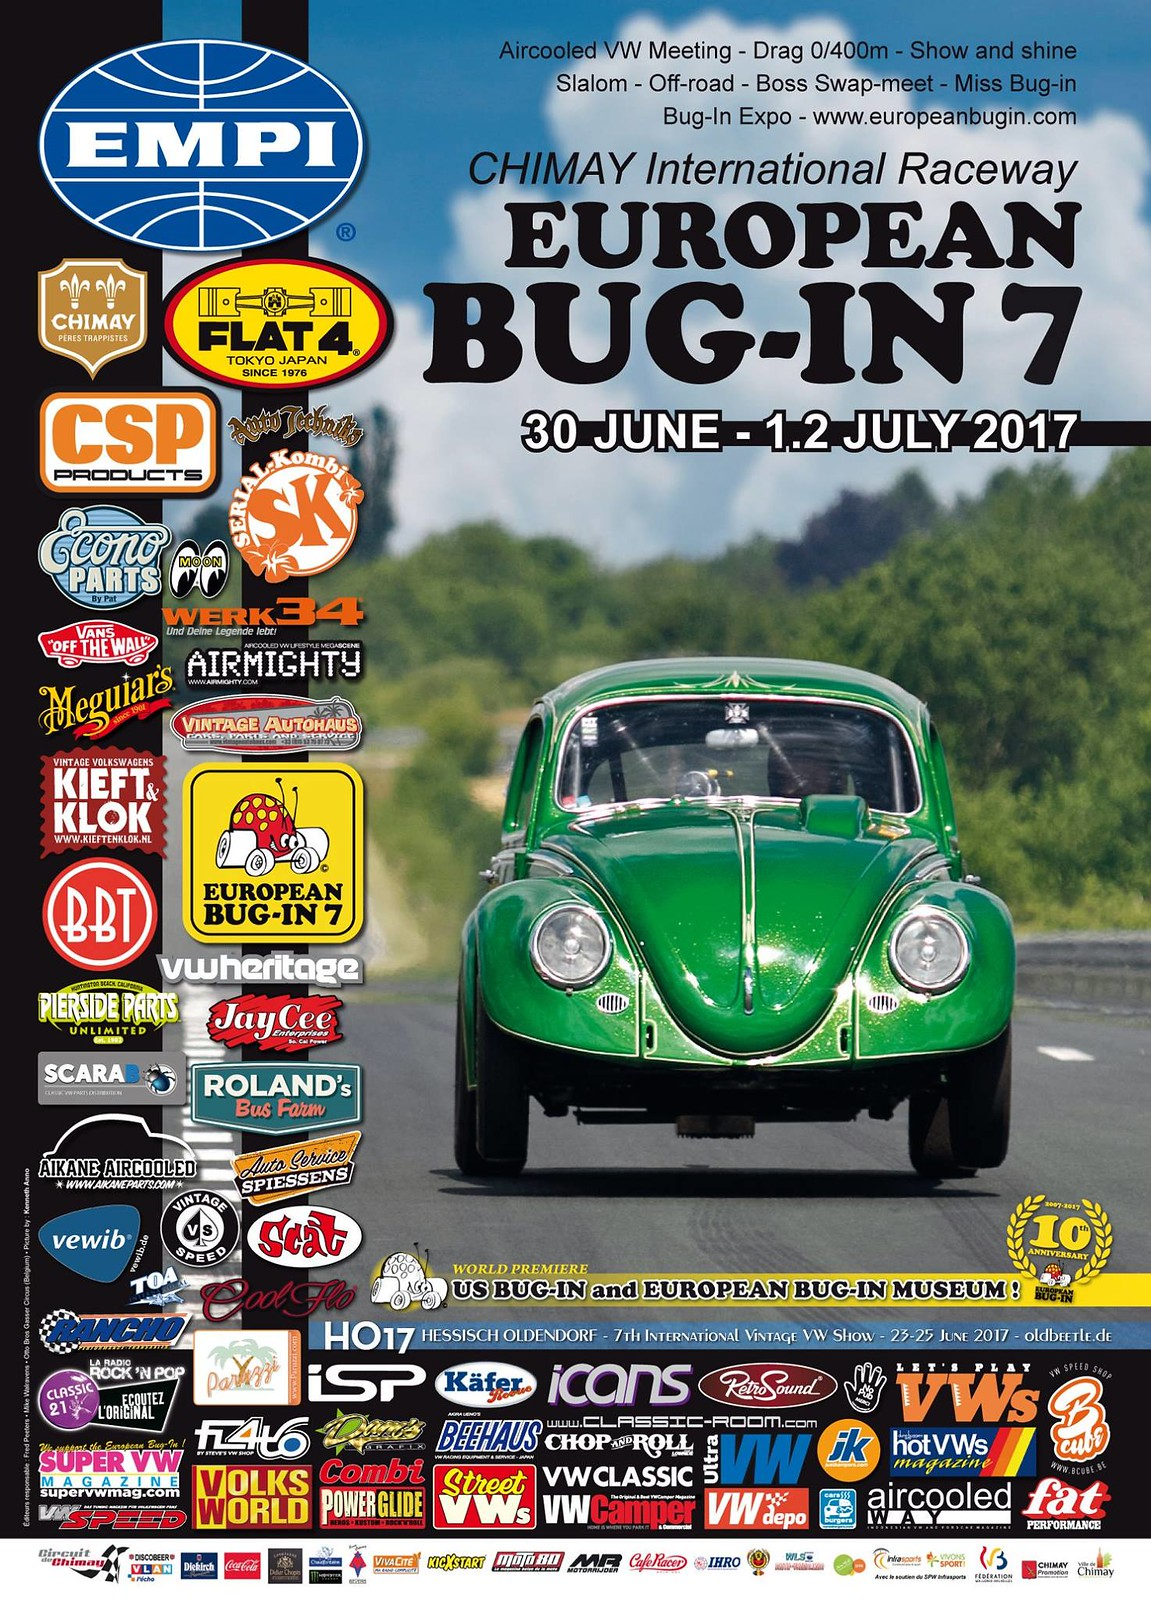 European Bug-In 7